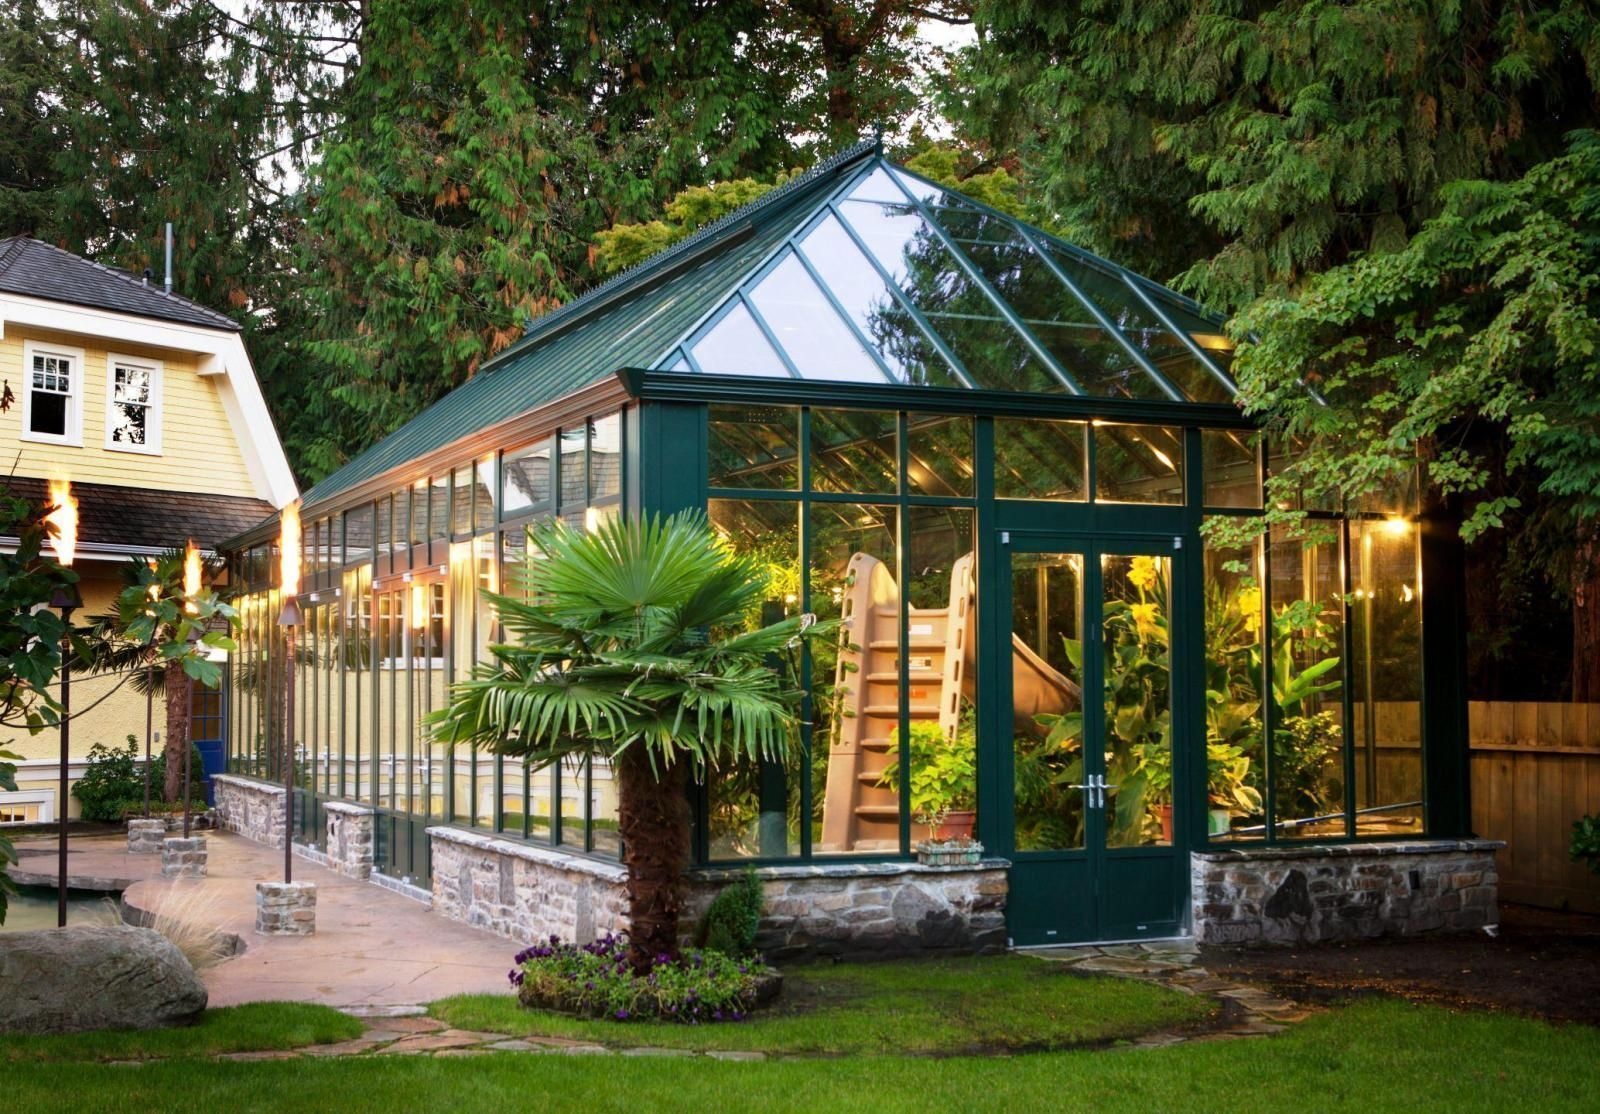 Green wooden framed home greenhouse designs with transparent glass